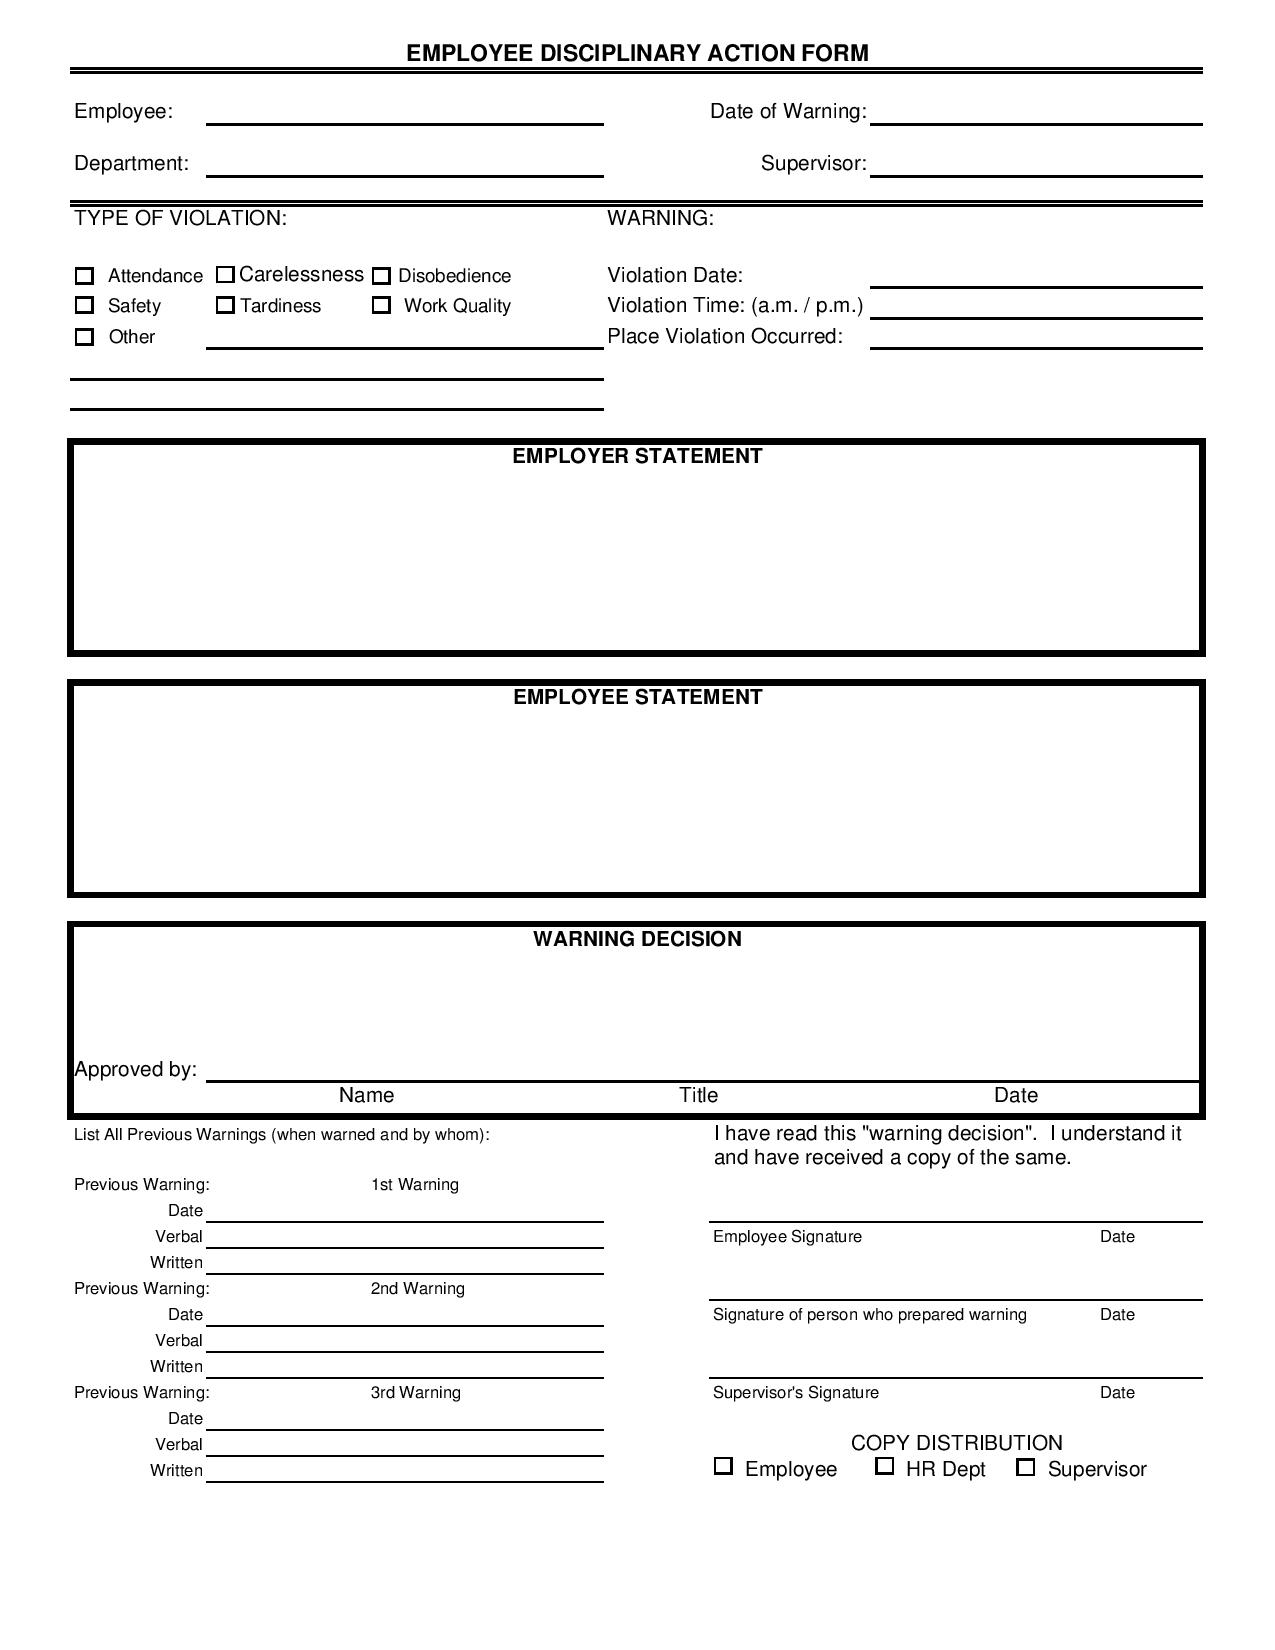 employee disciplinary action form page 0011